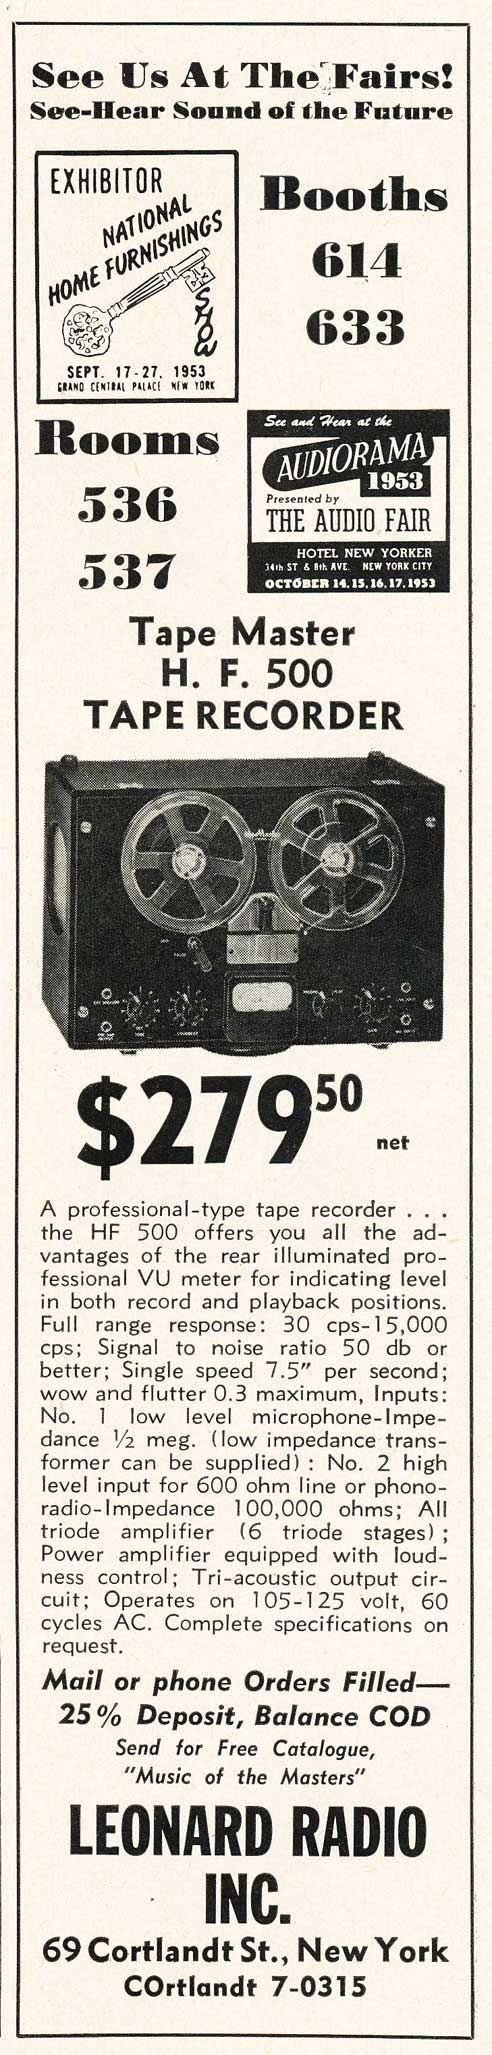 1953 Leonard Radio Tapemaster reel tape recorder ad in Reel2ReelTexas.com's vintage recording collection